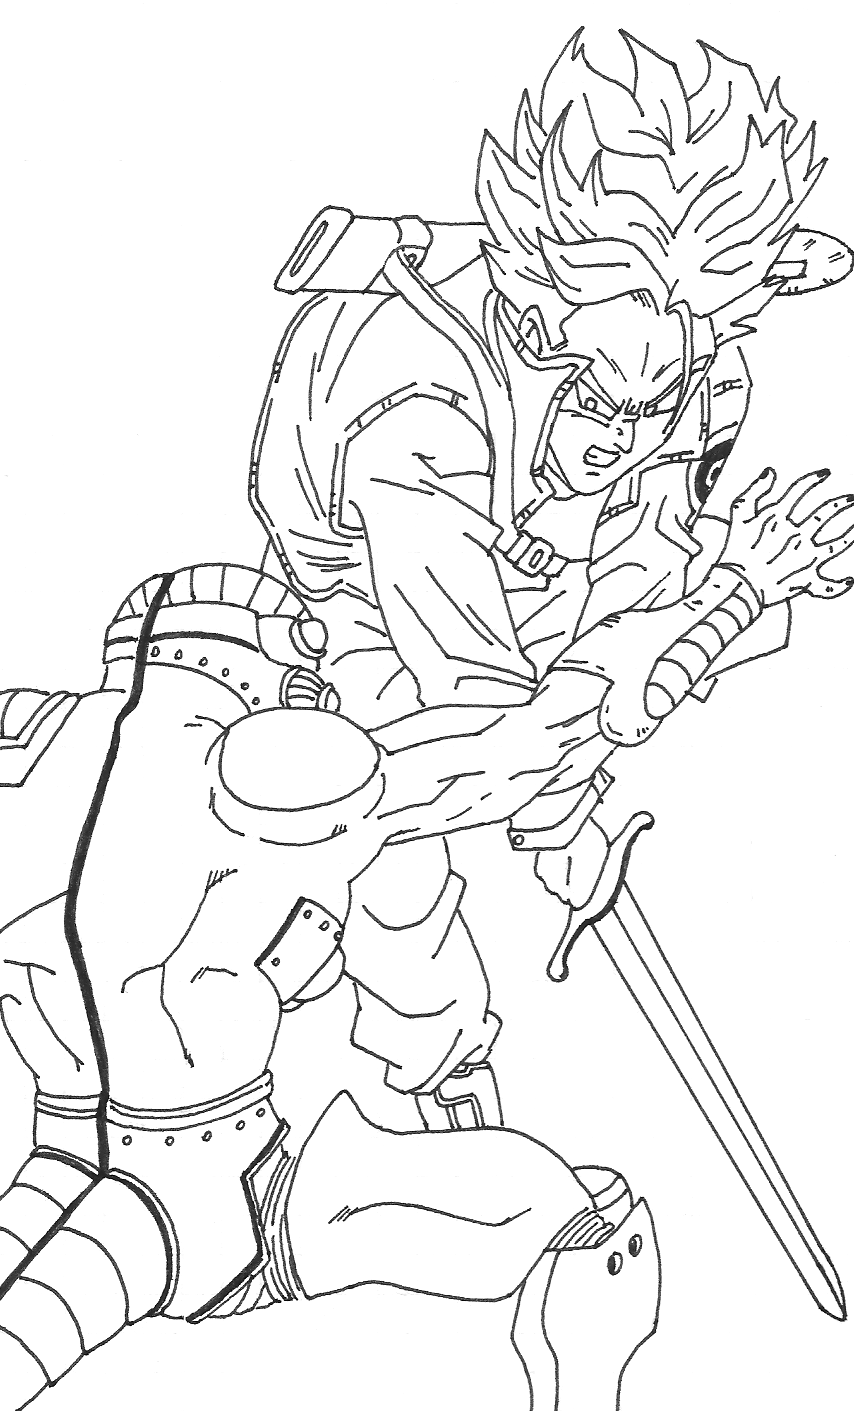 dbz coloring pages frieza - photo#35